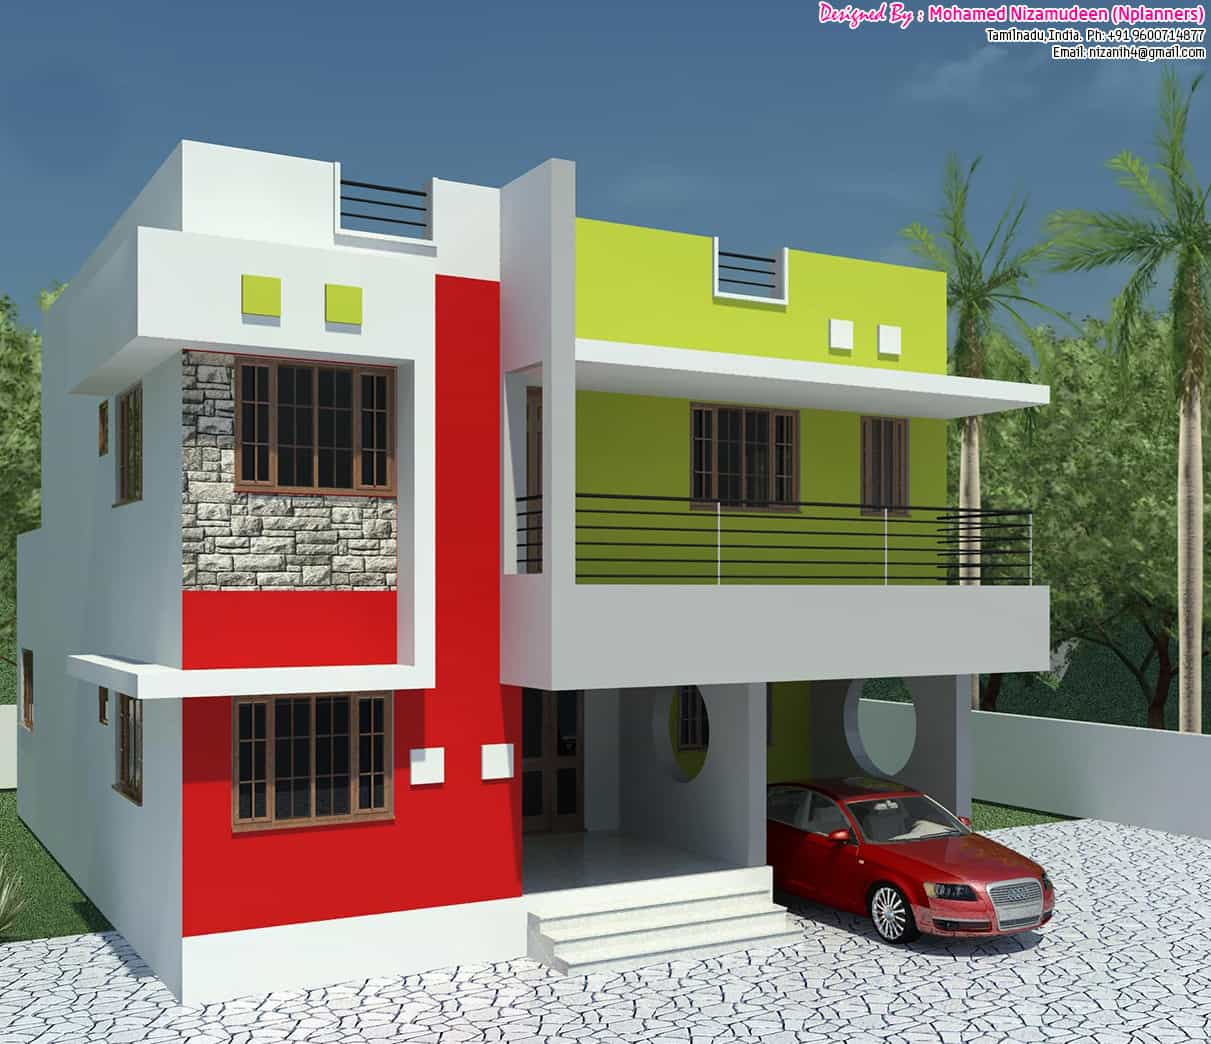 Below 1500 sq.ft - KeralaHousePlanner| Home Designs & Elevations